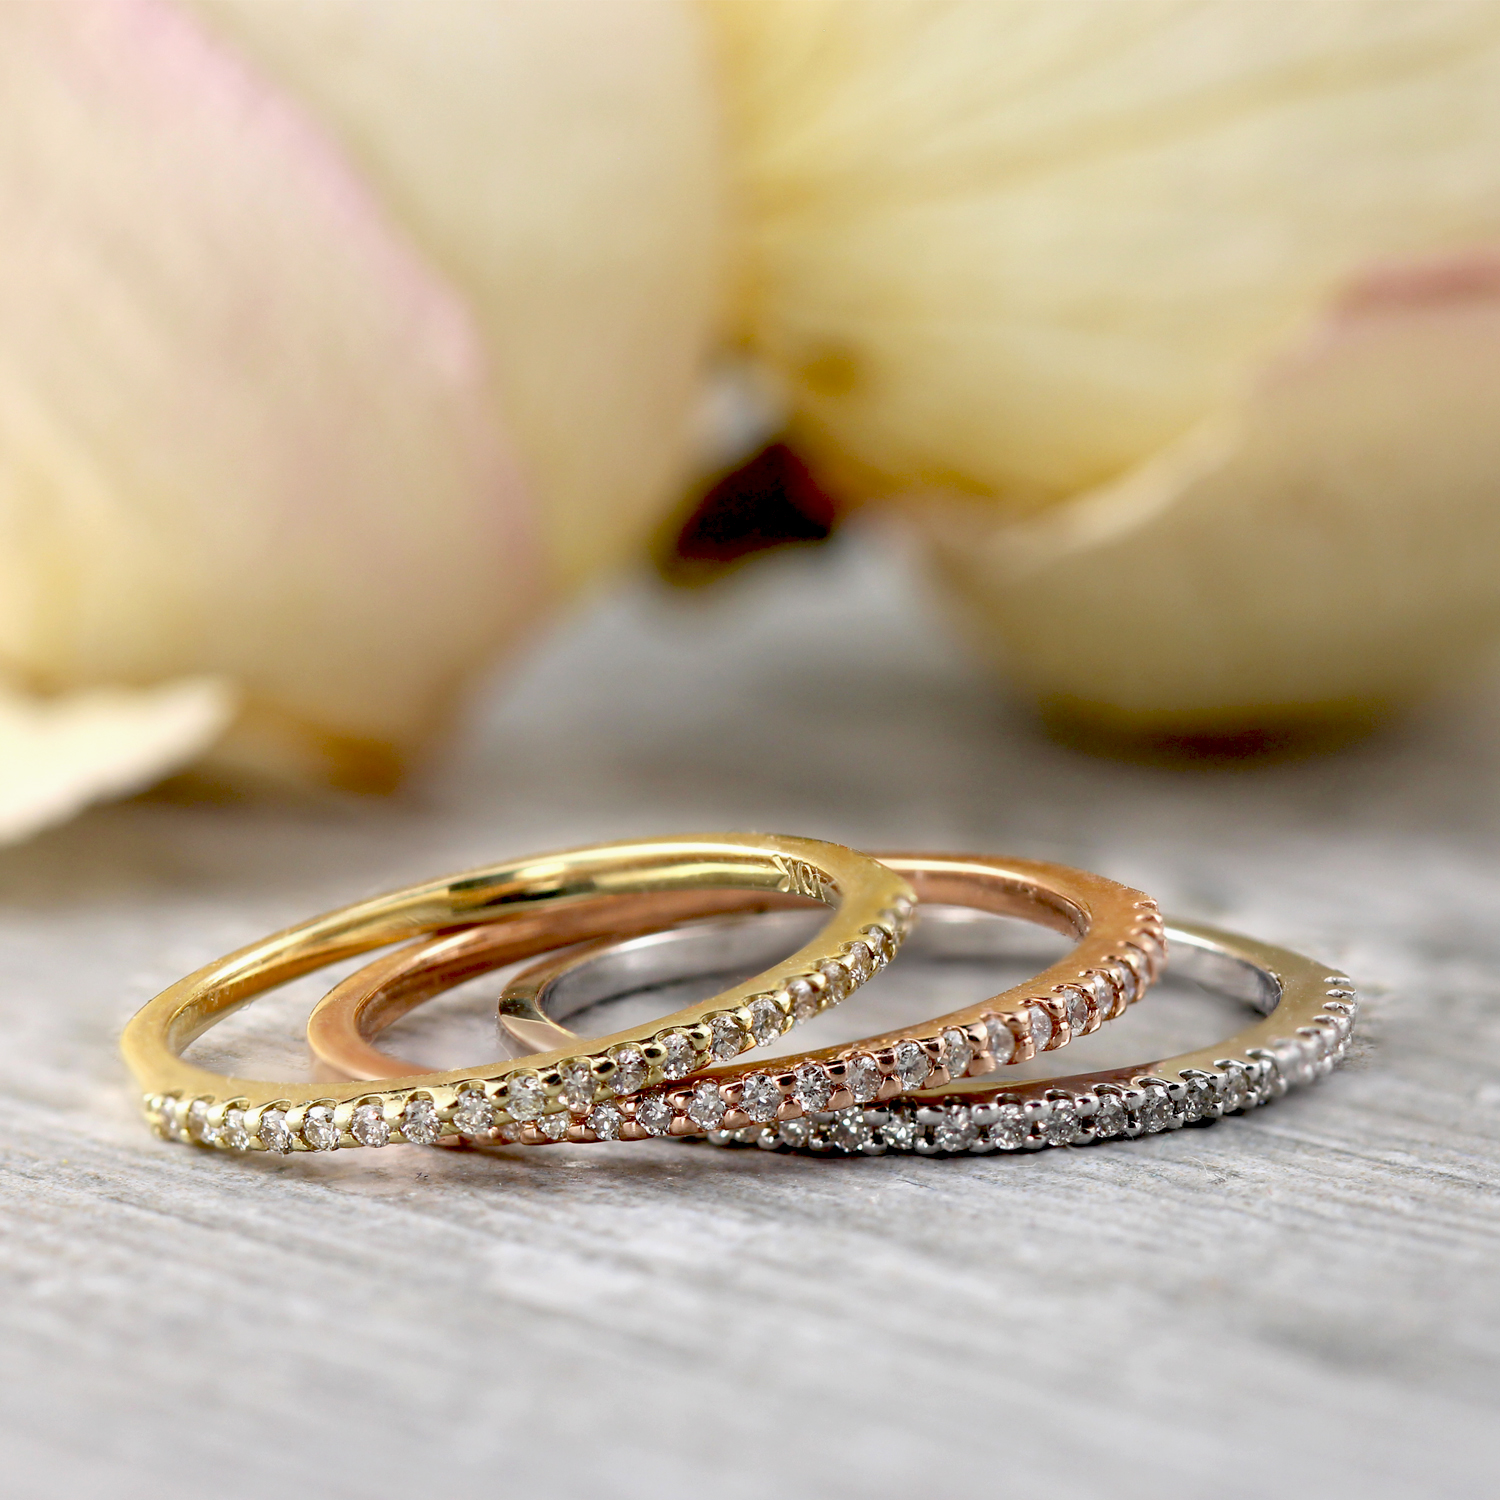 How to Choose Anniversary Bands